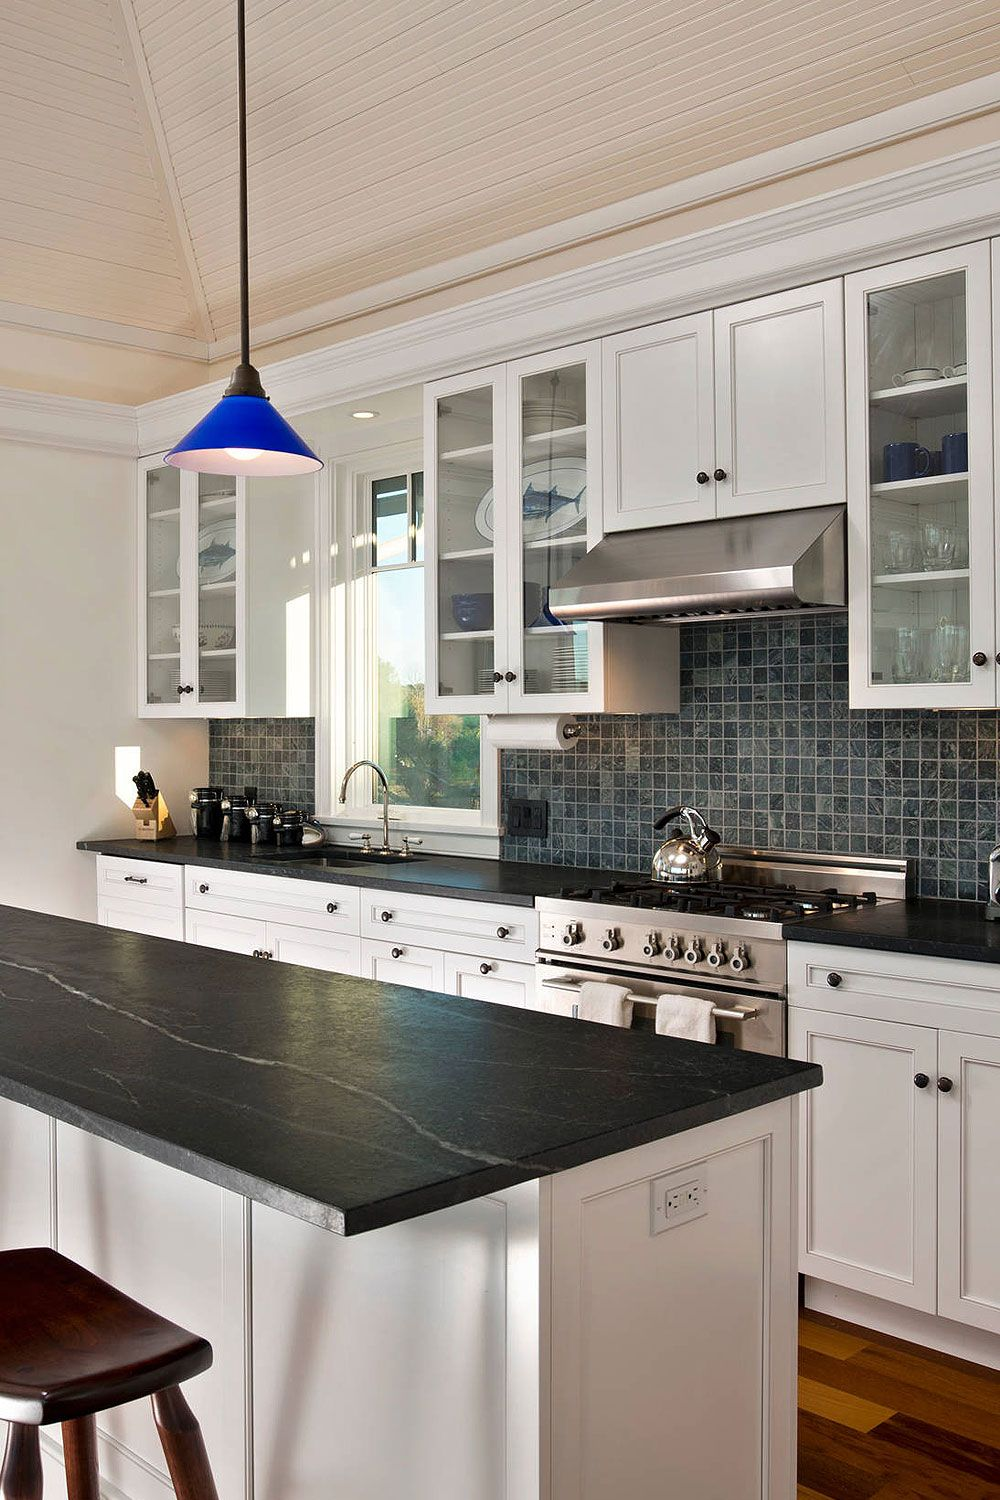 50+ Black Countertop Backsplash Ideas (Tile Designs, Tips